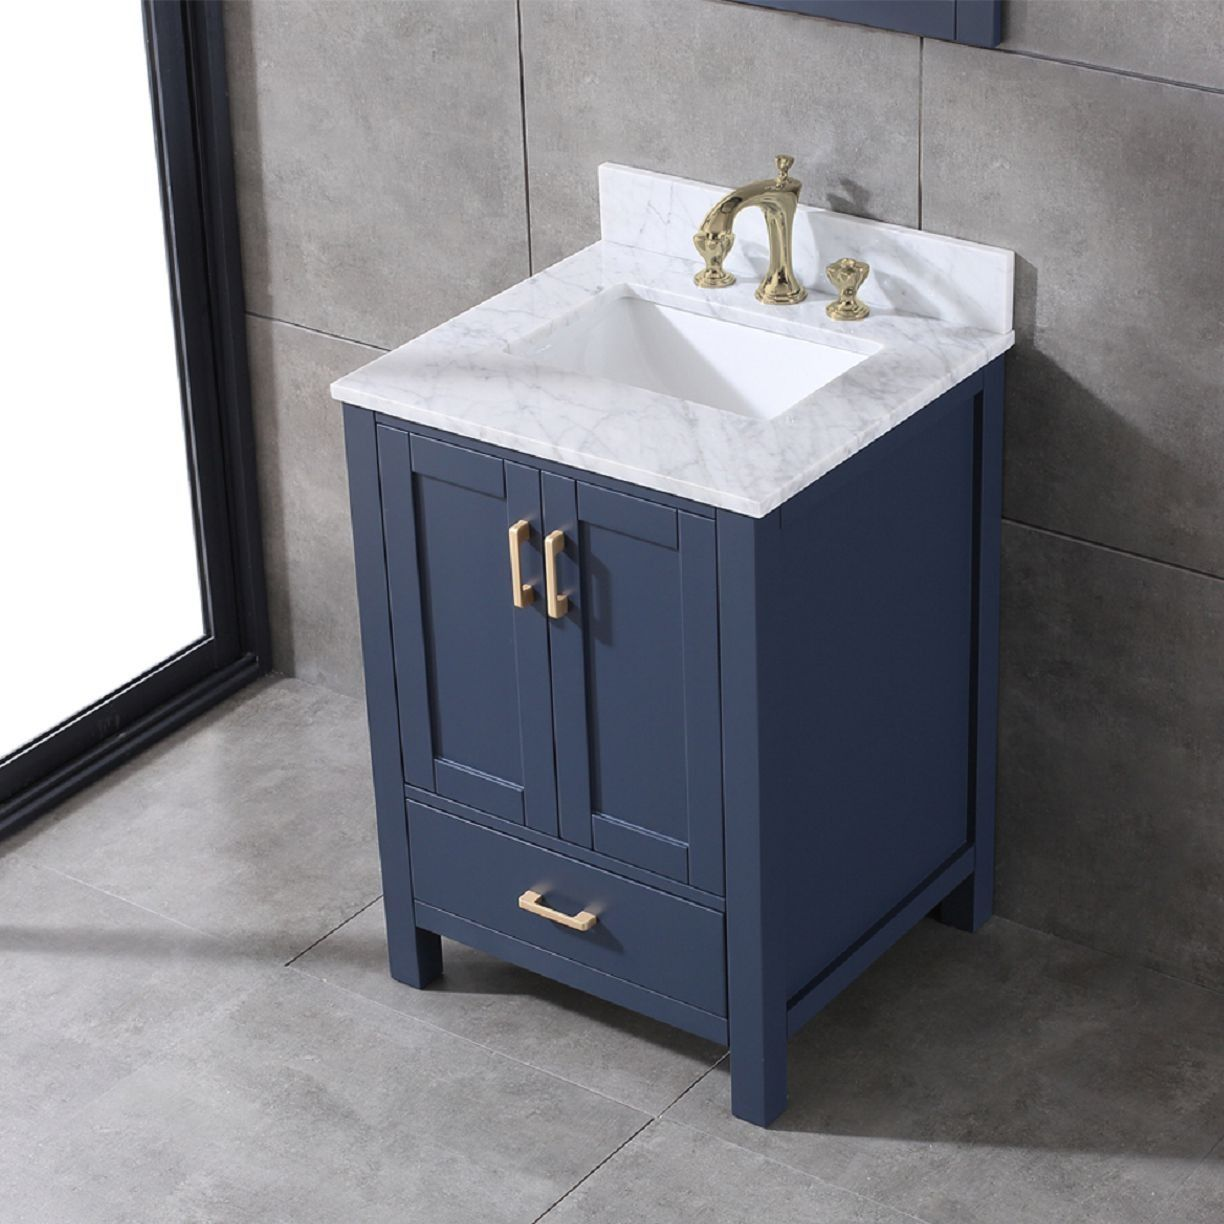 Bathroom Vanity In Navy Blue 24 In X 22 In With Gold Handles And Soft Close Drawers With Dovetail Blue Bathroom Vanity Bathroom Vanity Bathroom Vanity Cabinets